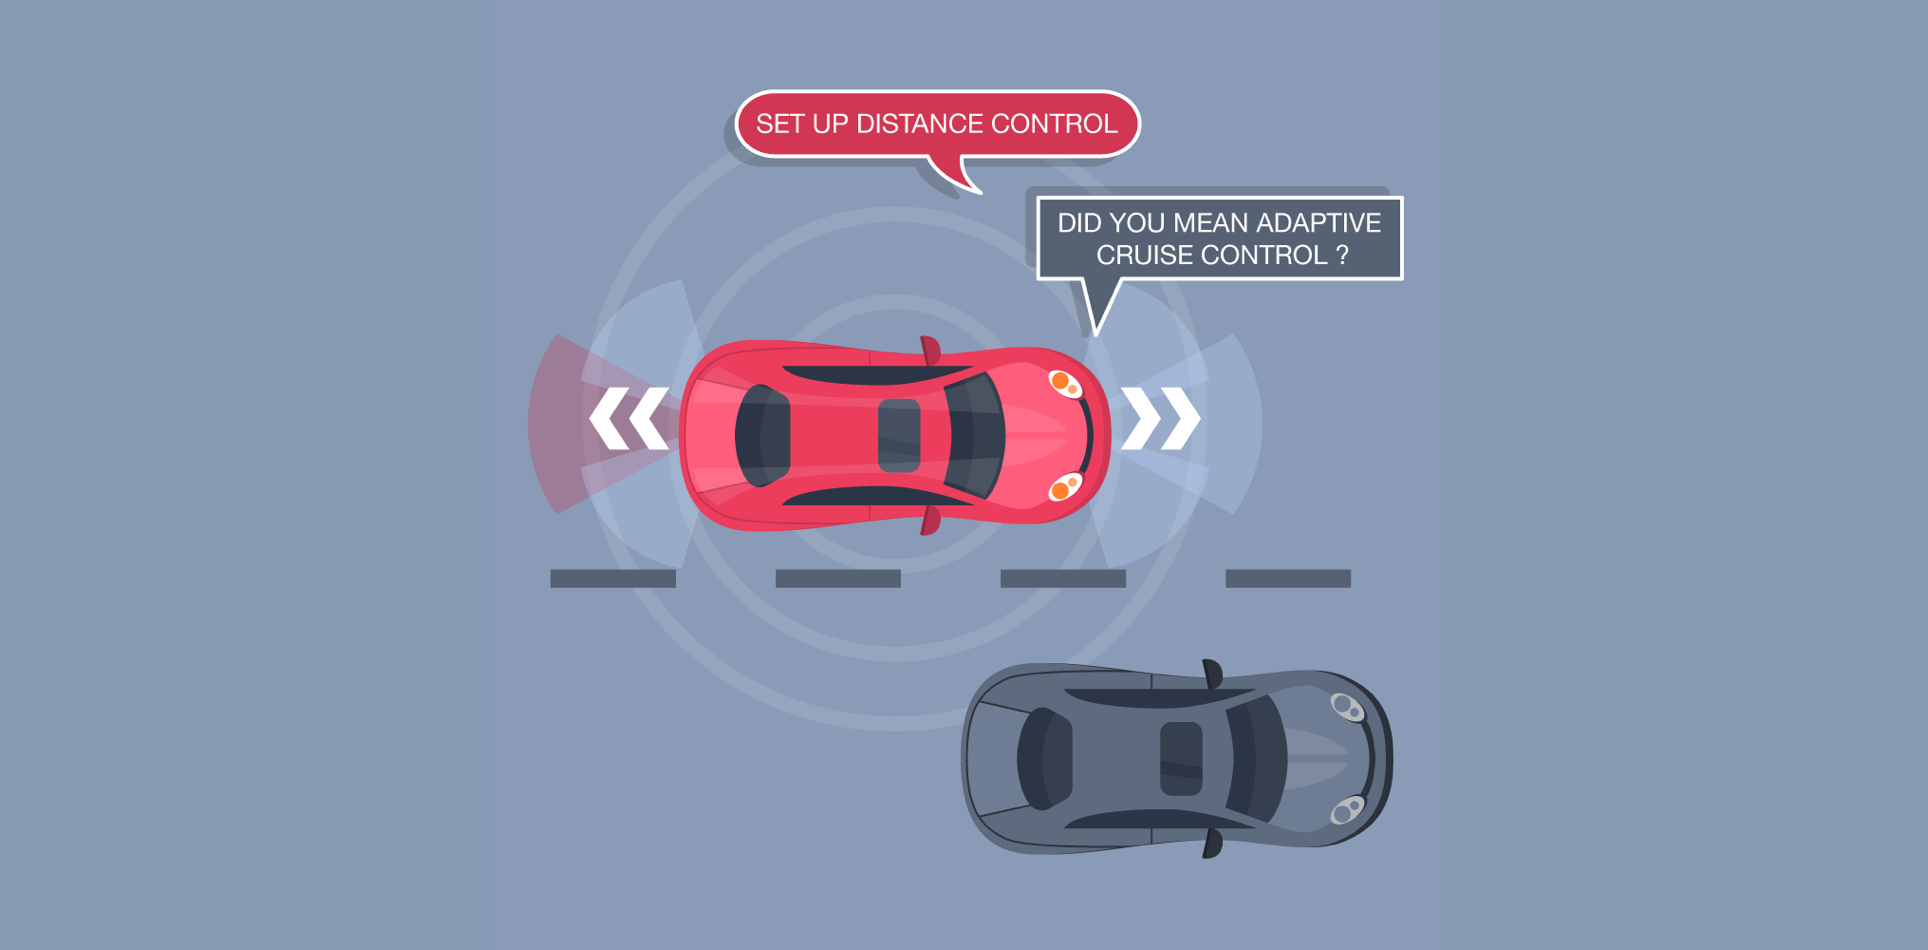 Multimodal conversational agent: Activate distance control. Did you meant activate adaptive cruise control?